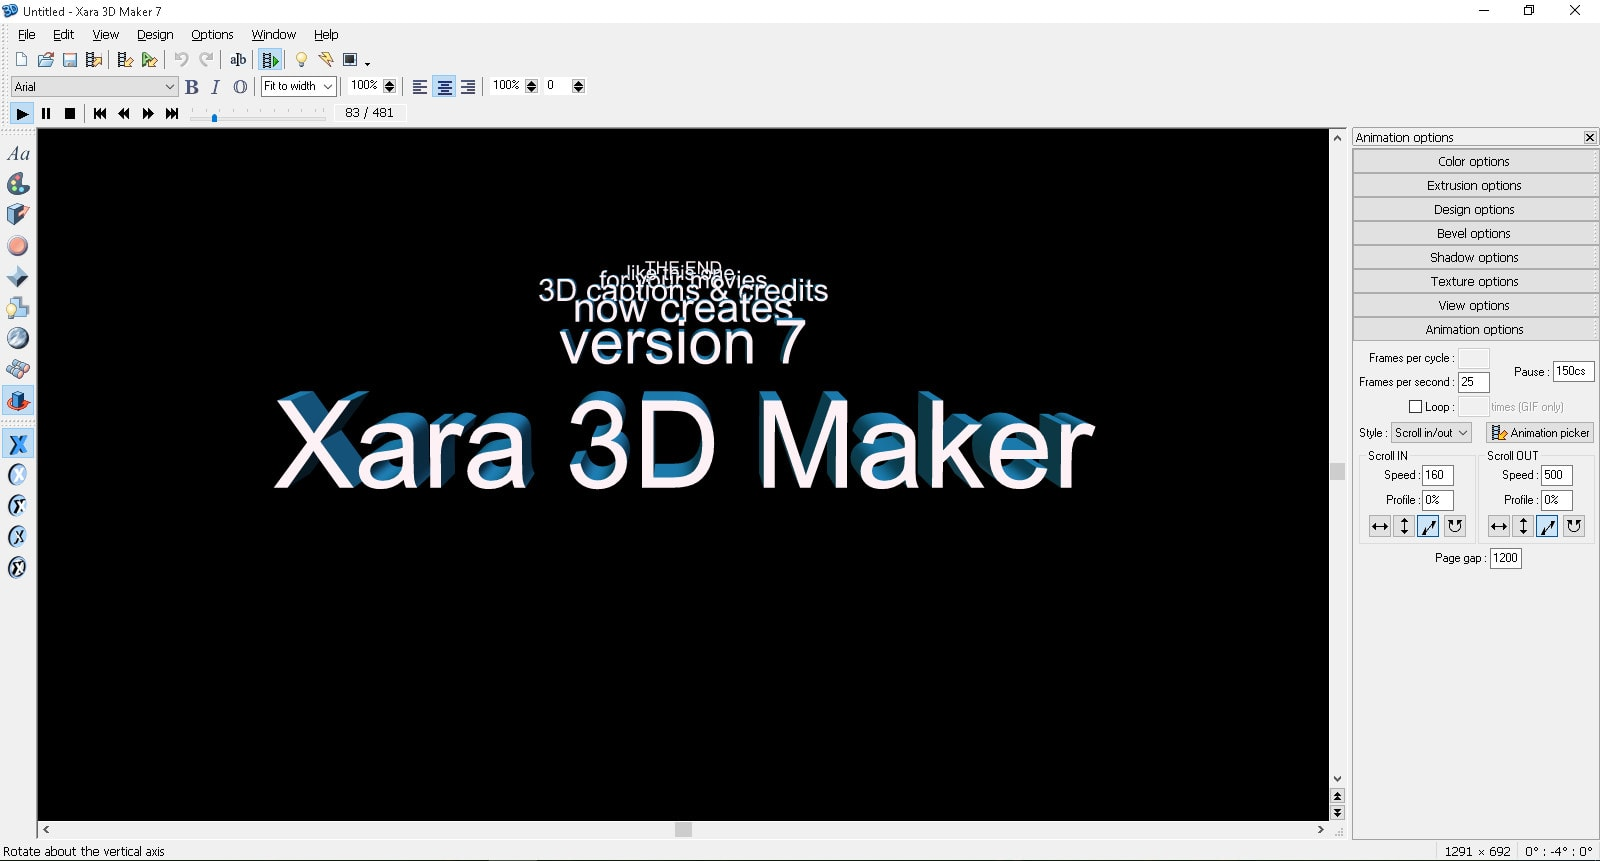 Xarad 3D Maker 7 New File